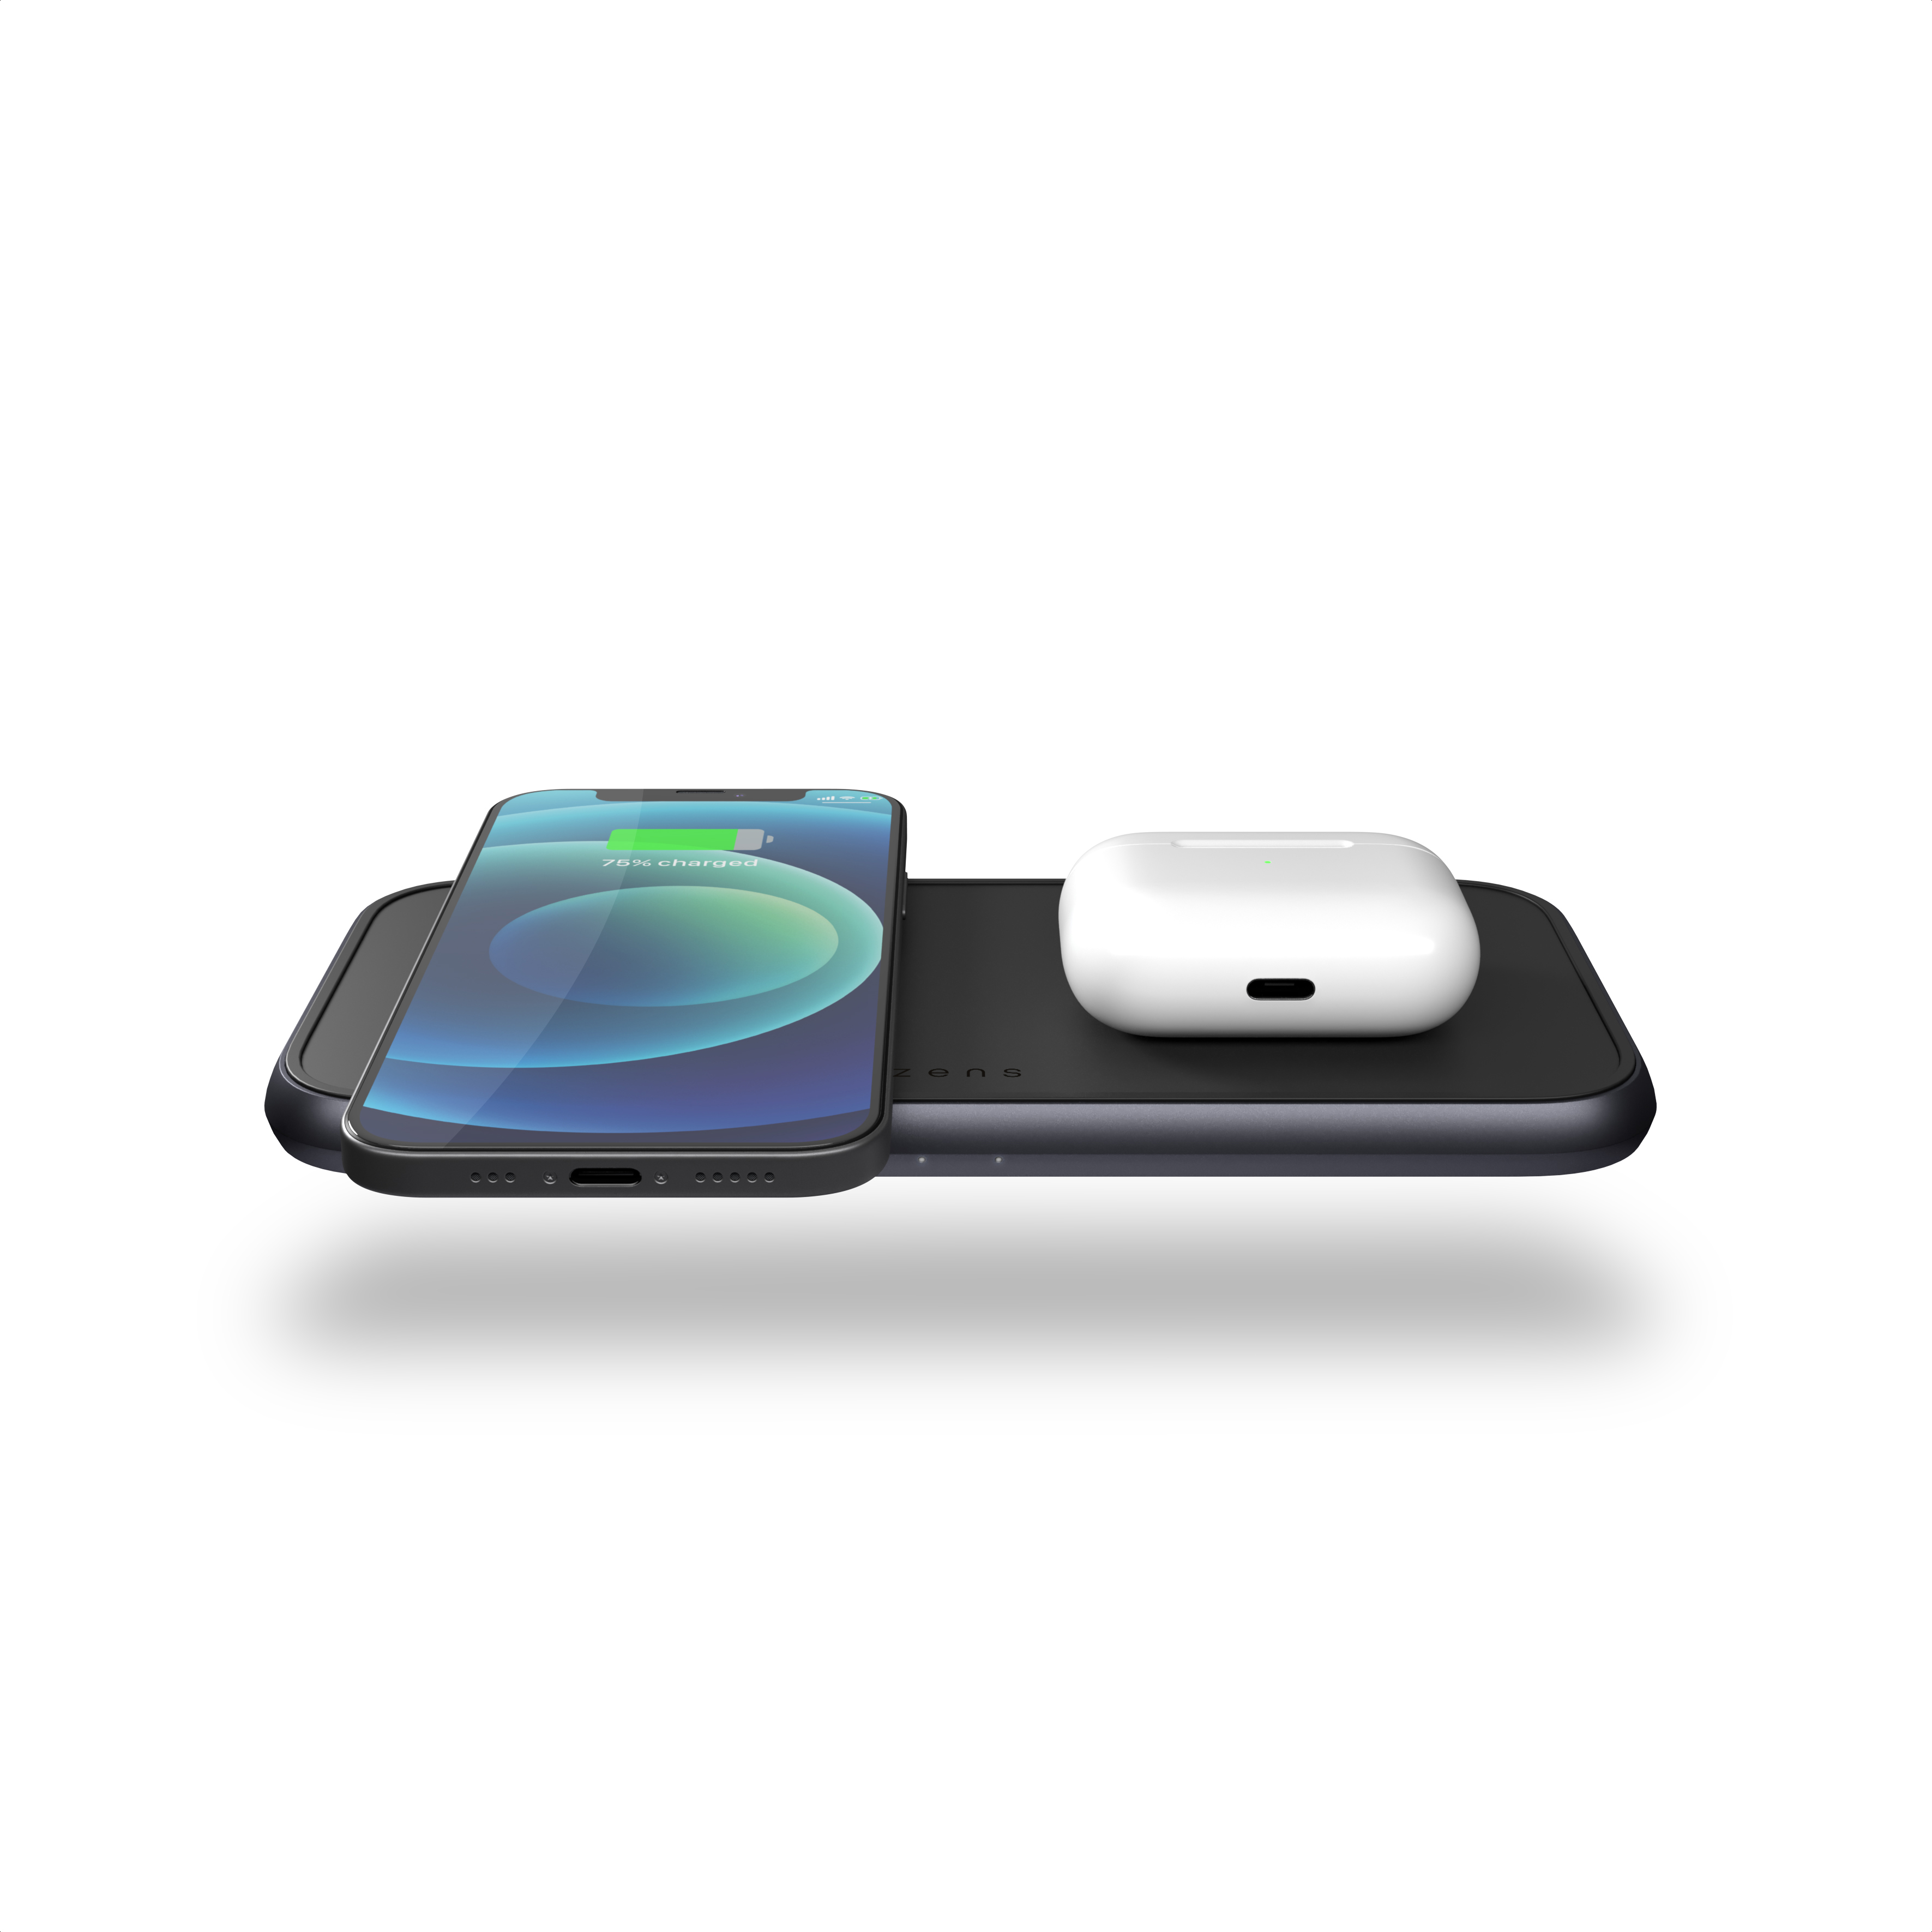 ZEDC10B - Zens Dual Aluminium Wireless Charger Front Top View with devices